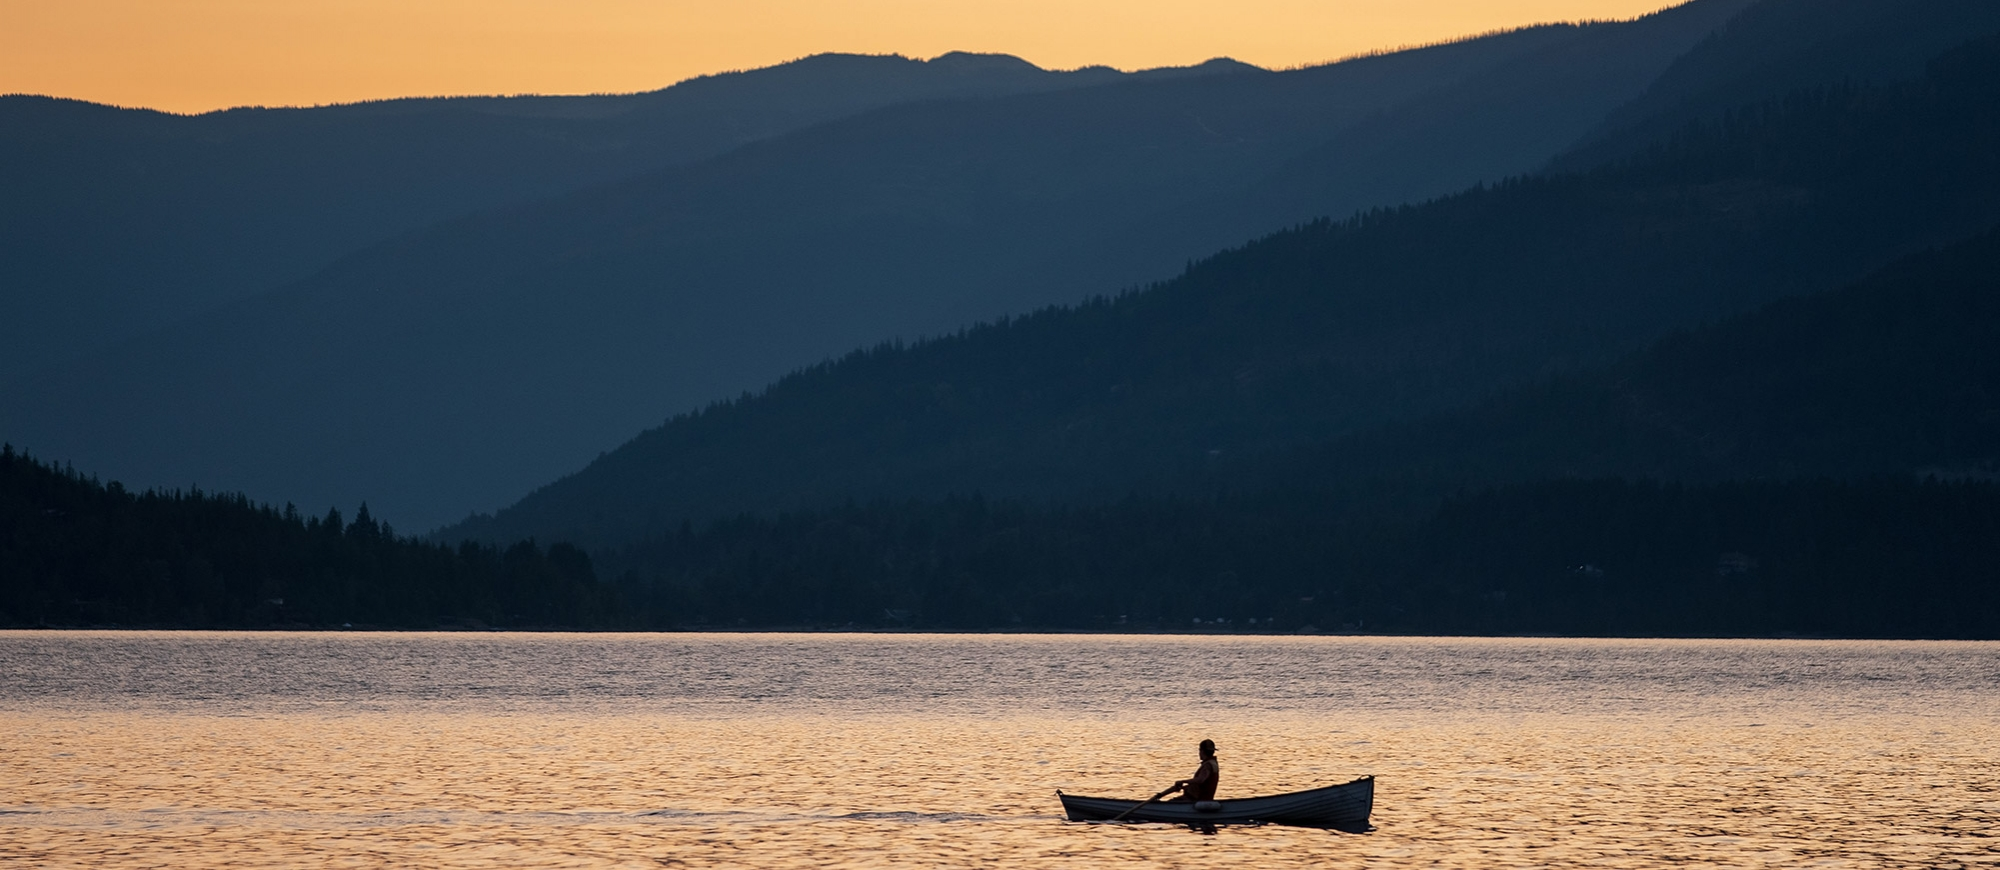 A person in a row boat silhouetted by the sunset on Kootenay Lake